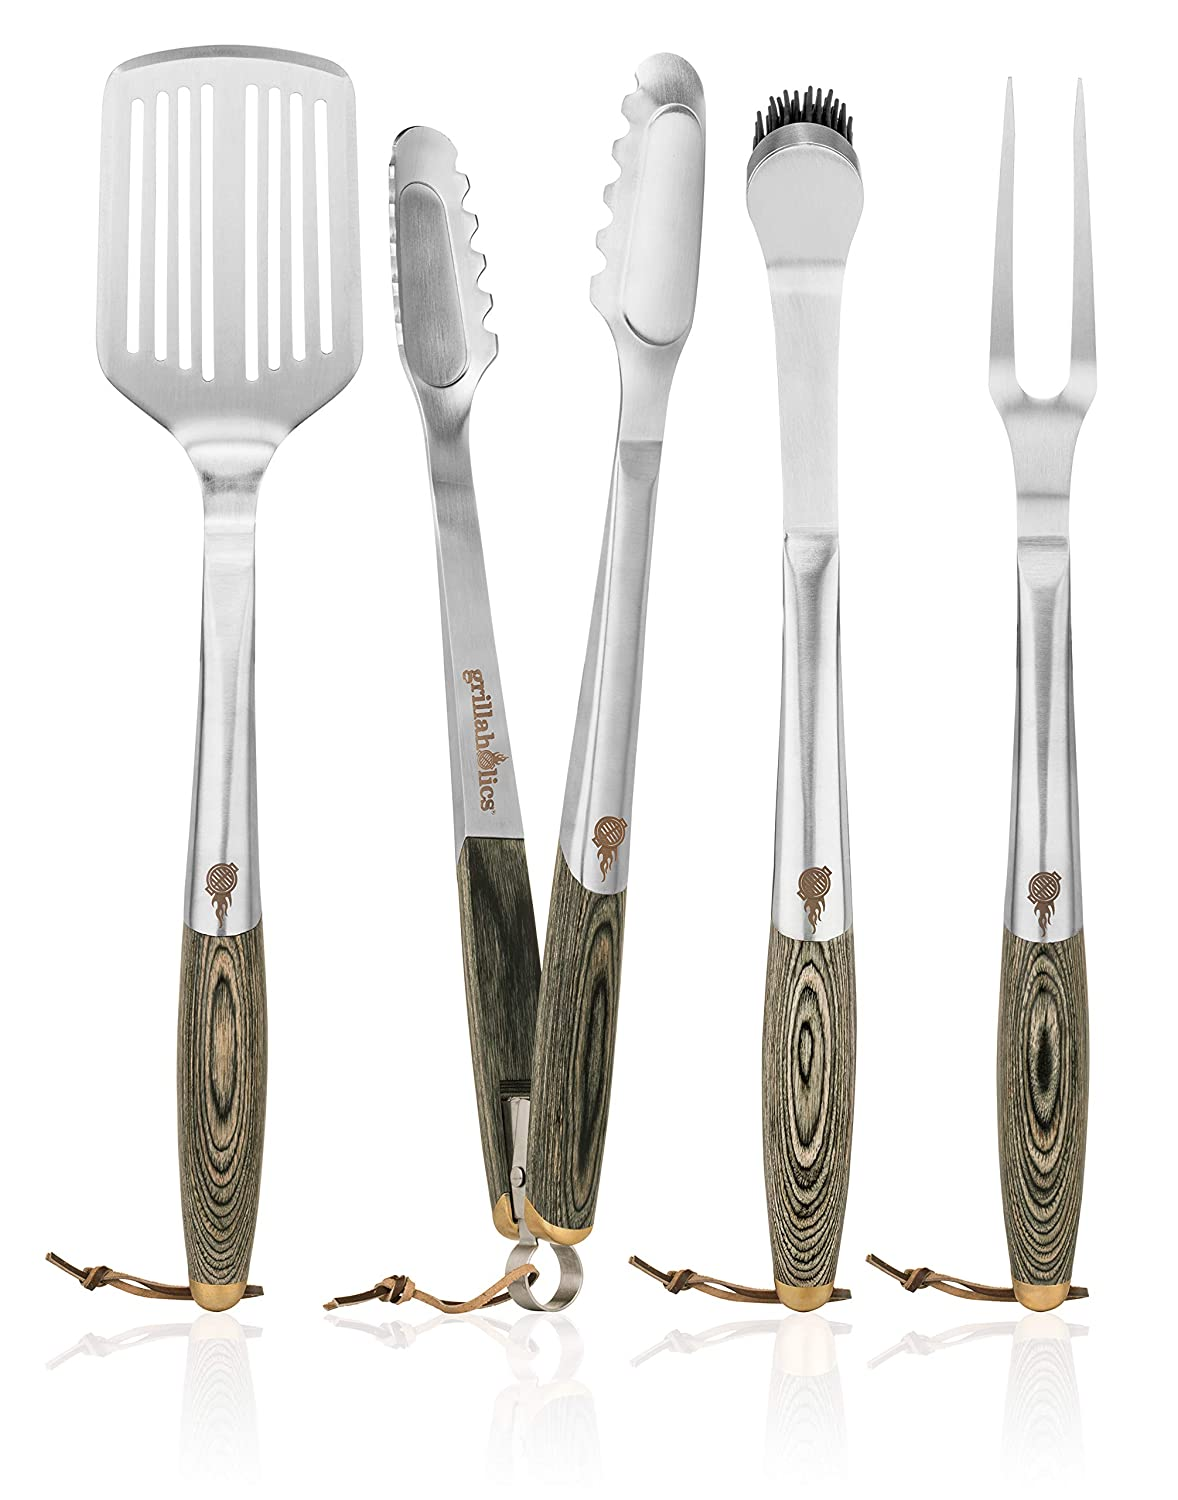 Grillaholics Premium BBQ Grill Tools – Luxury 4-Piece Barbecue Utensils Grill Set – Wooden Gift Box Includes Barbeque Tongs, Meat Fork, Grill Spatula Basting Brush – Lifetime Manufacturers Warranty